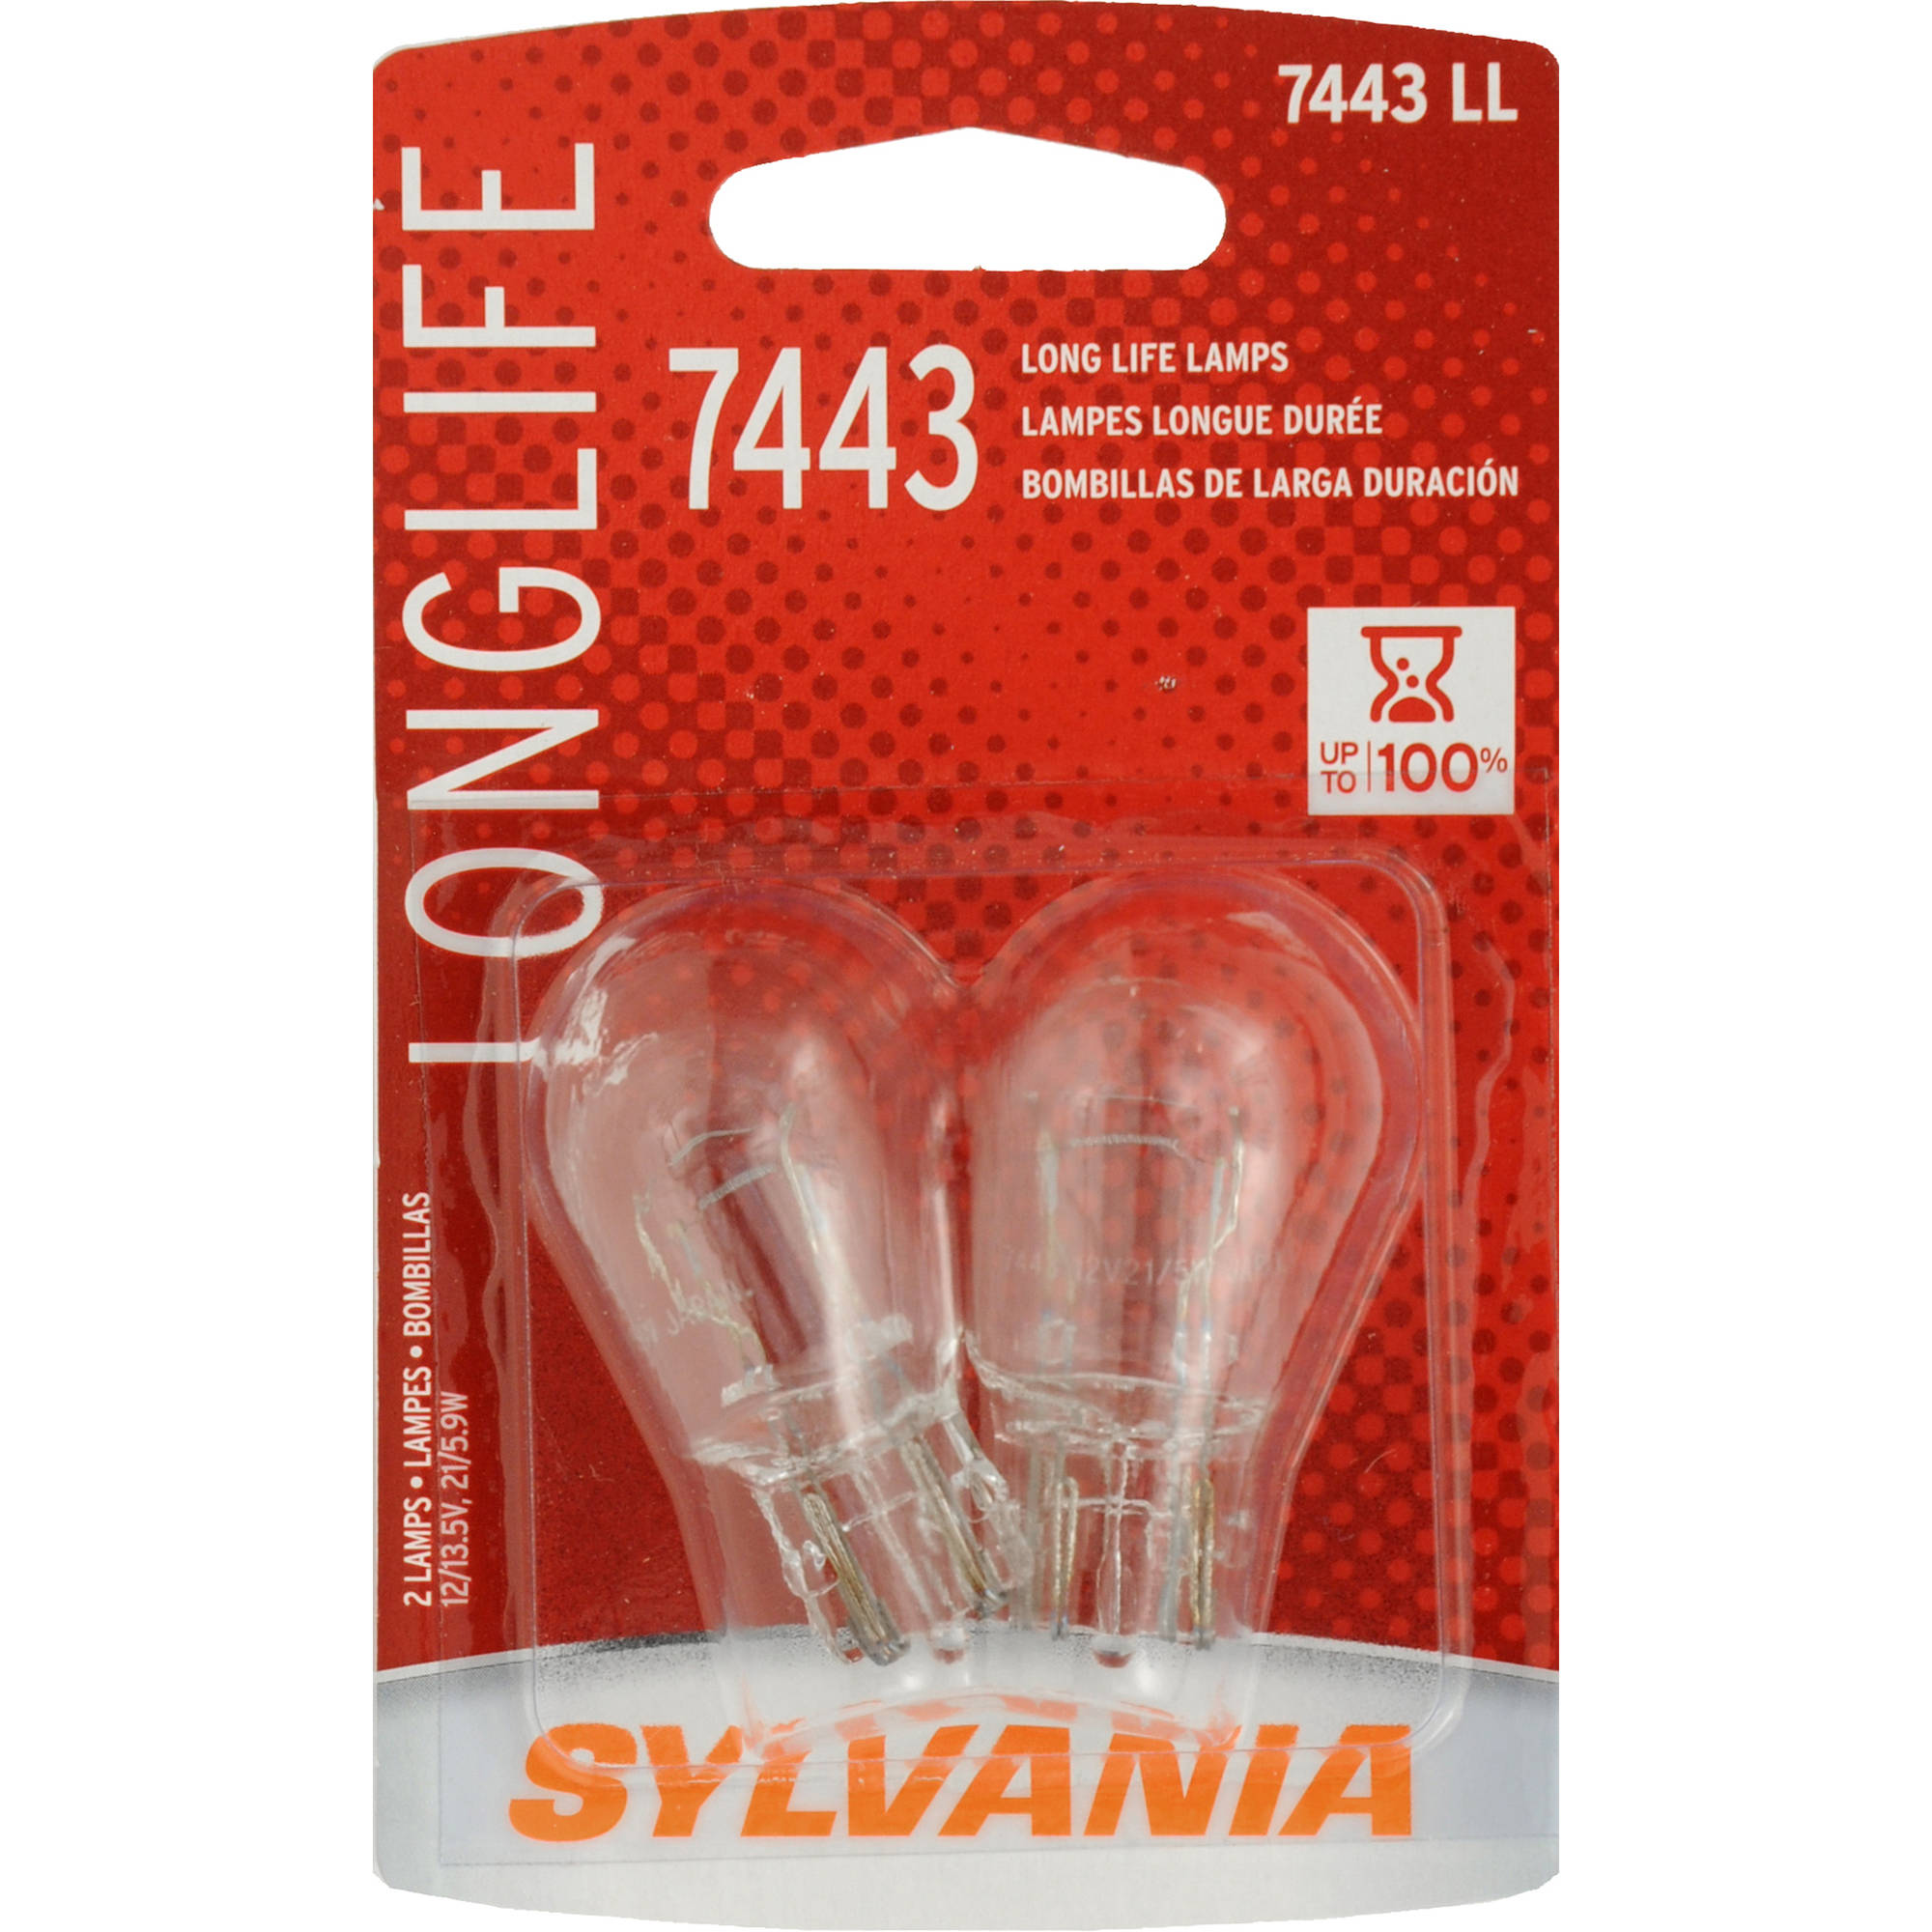 Sylvania 7443 Long-Life Miniature Bulb, Twin Pack